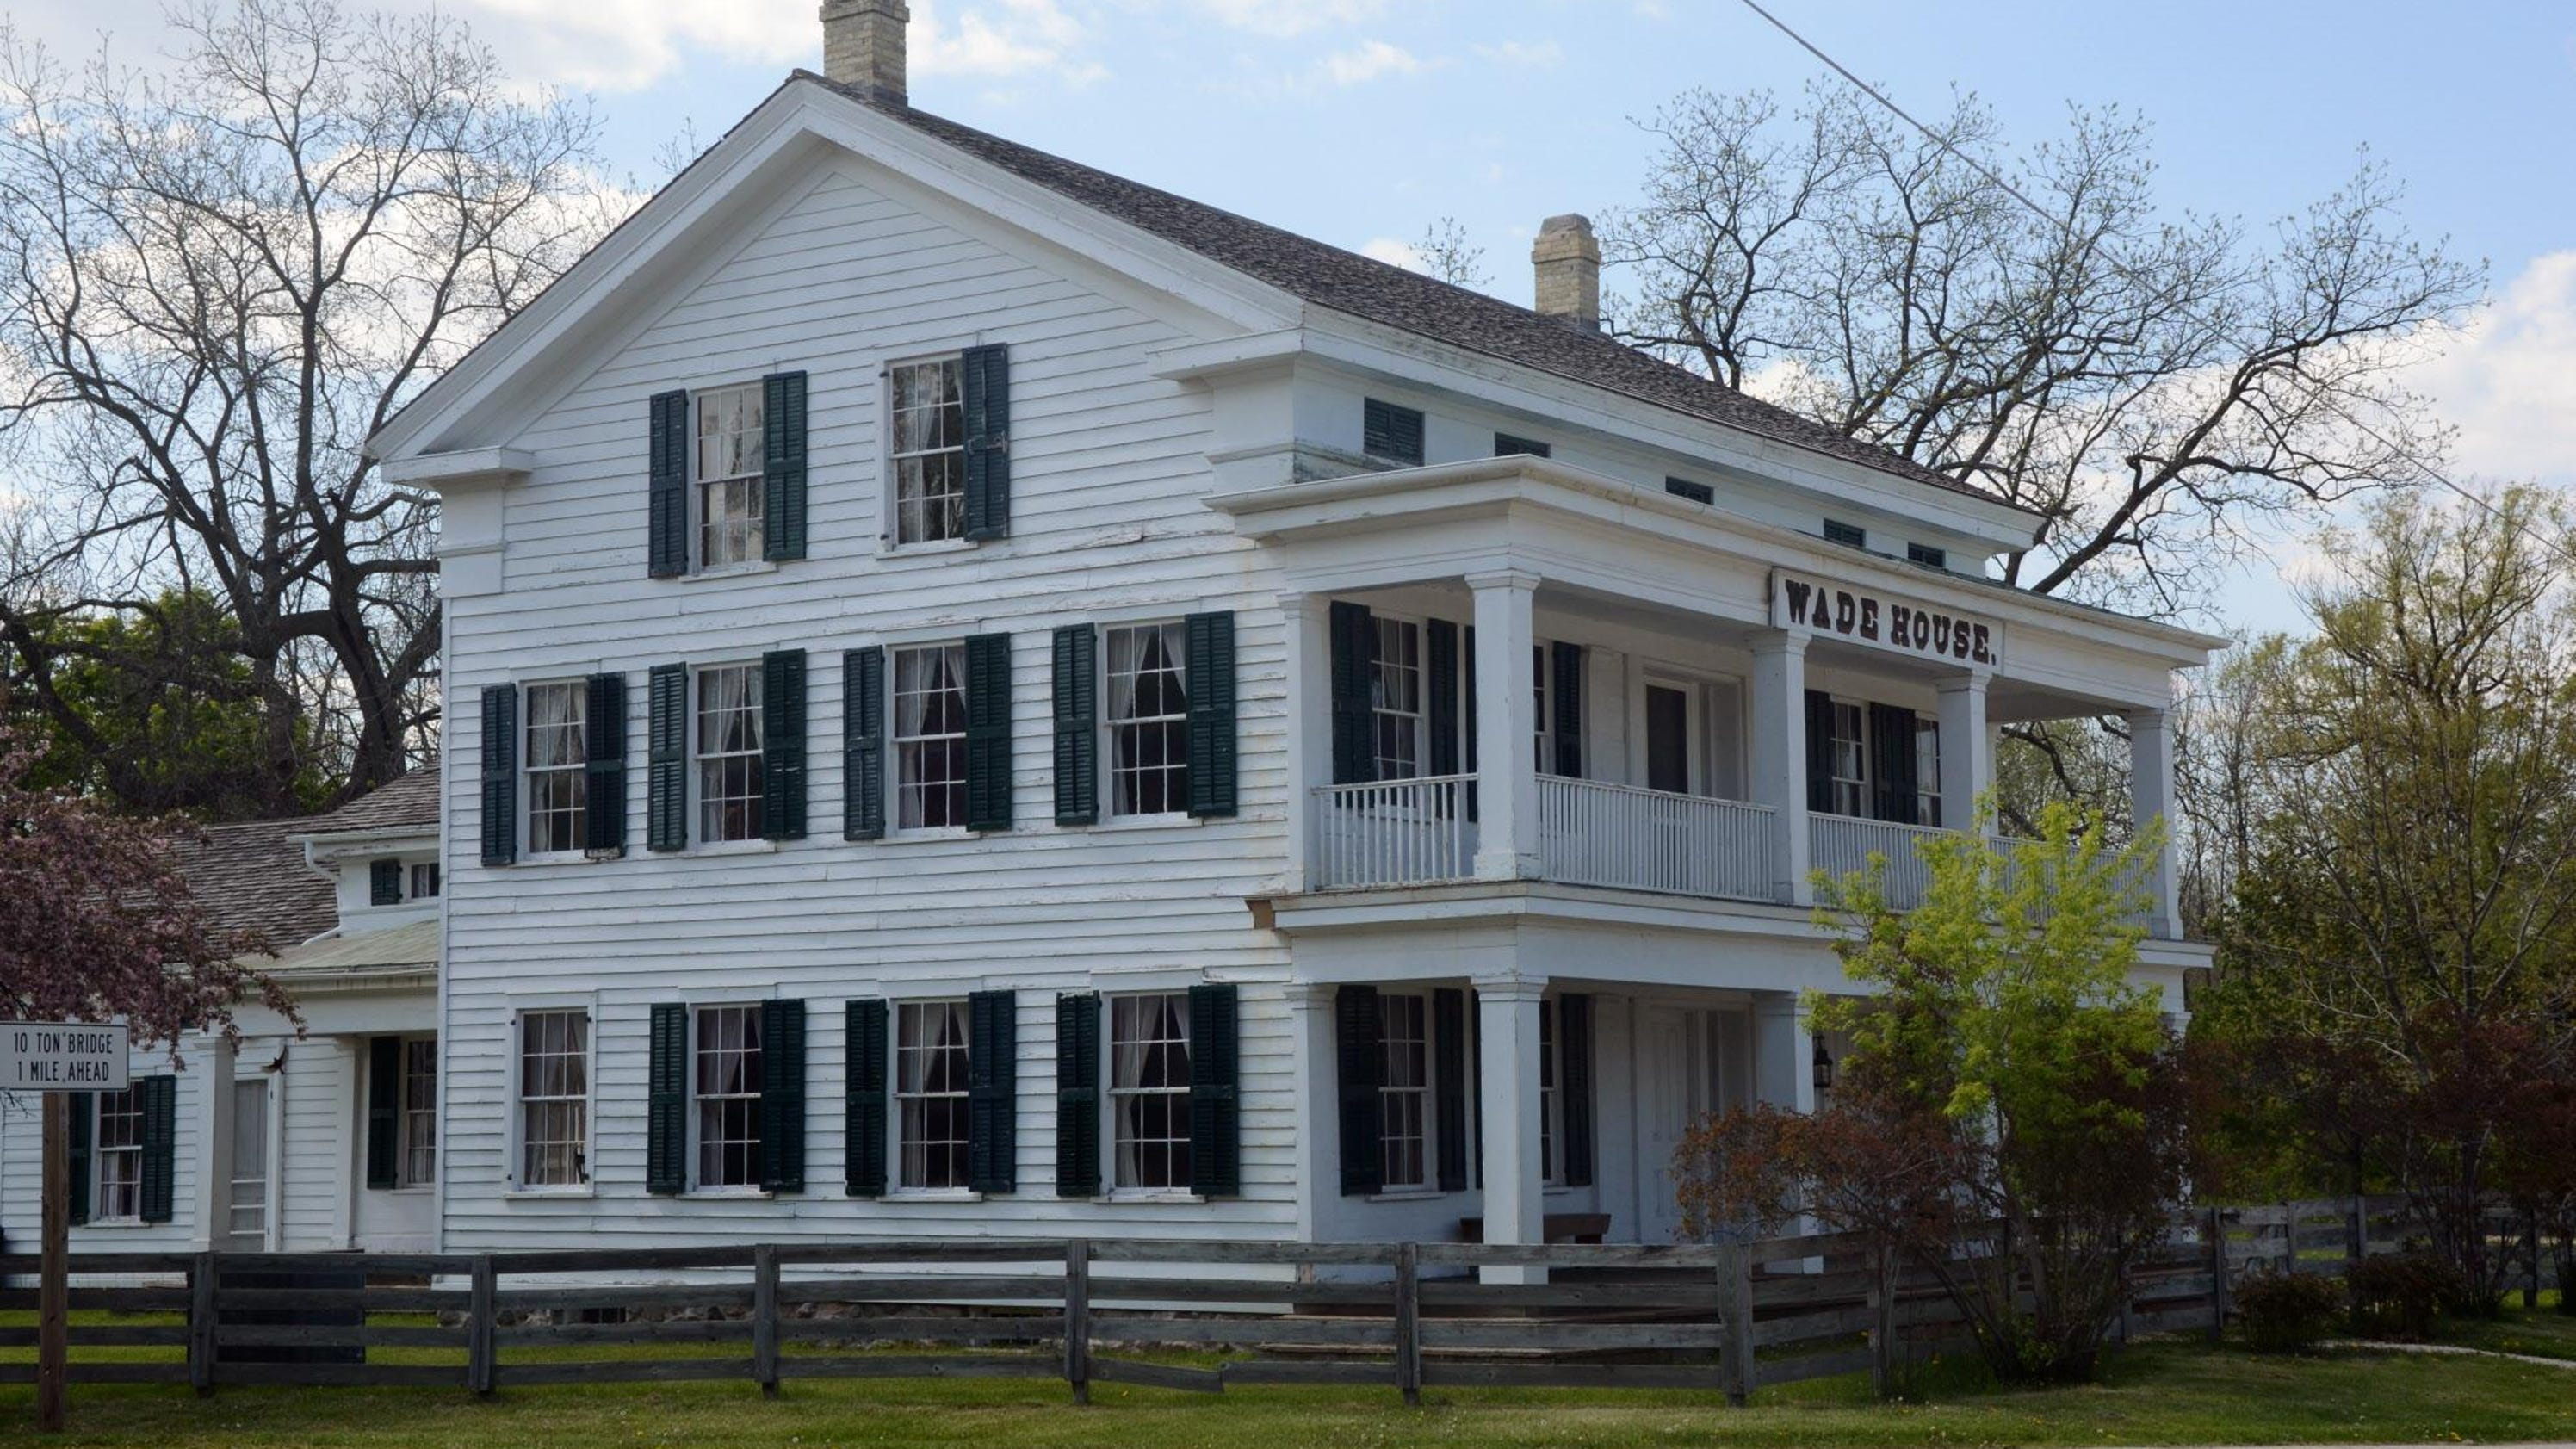 Wade House preserves 1850s stagecoach stop and hotel